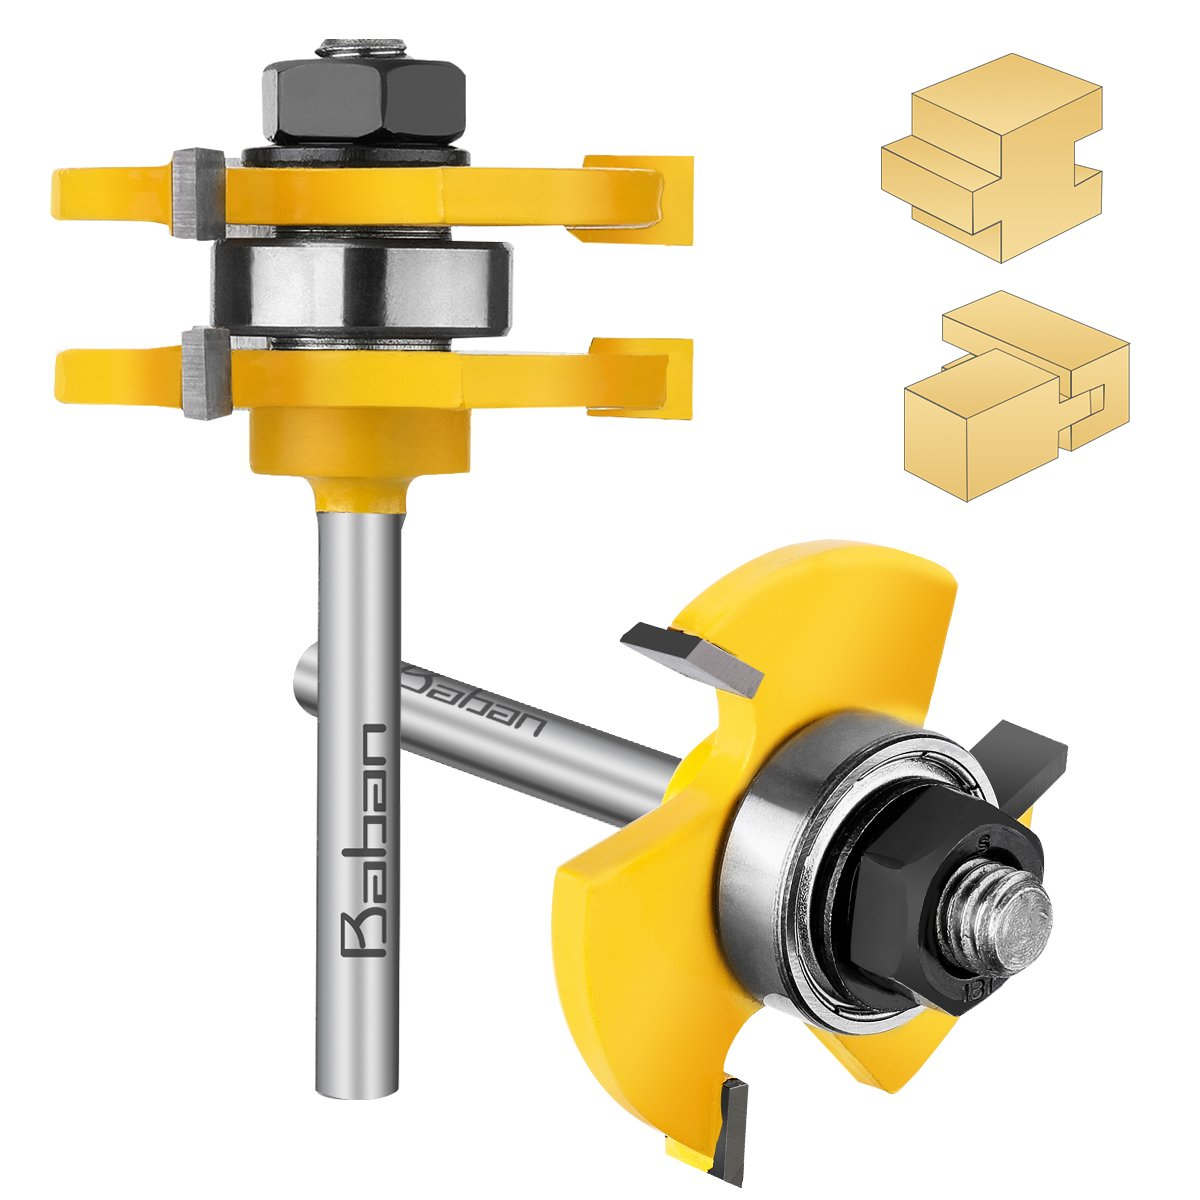 Router Bits, Baban 1/4'' Shank Tongue and Groove Router Bit Set Wood Door Flooring 3 Teeth Adjustable Routers for Woodworking Milling Cutter Tool For Router Table/Base Router, Kitchen/Bathroom/Cabinets by Baban (Image #1)